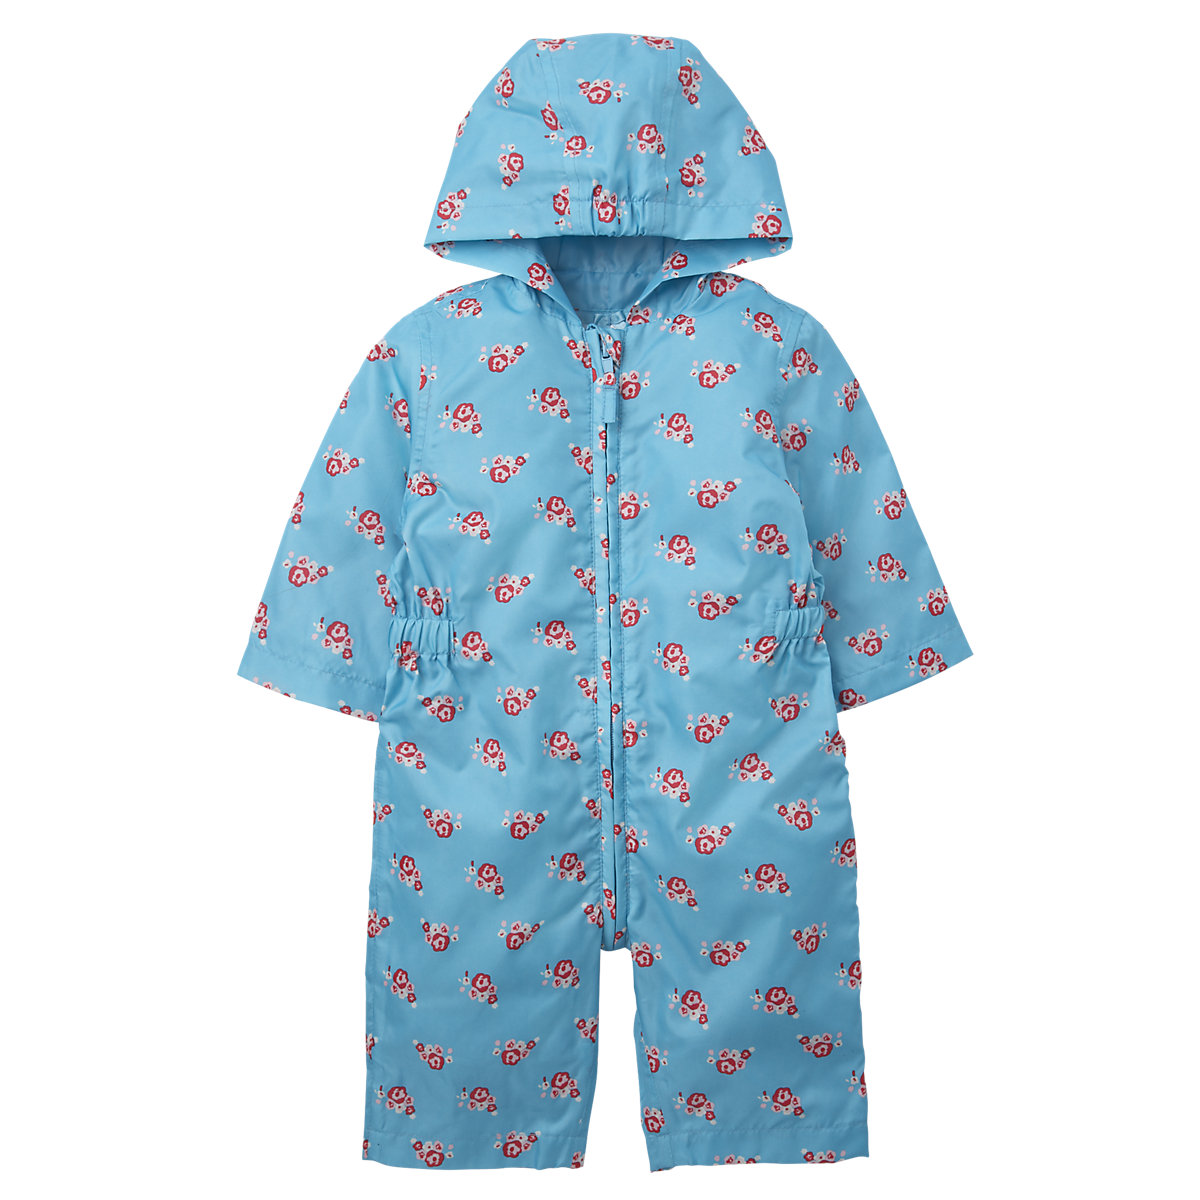 Mothercare-Baby-Newborn-Girls-Floral-Puddlesuit-Rain-Coat-Jacket-Jacket